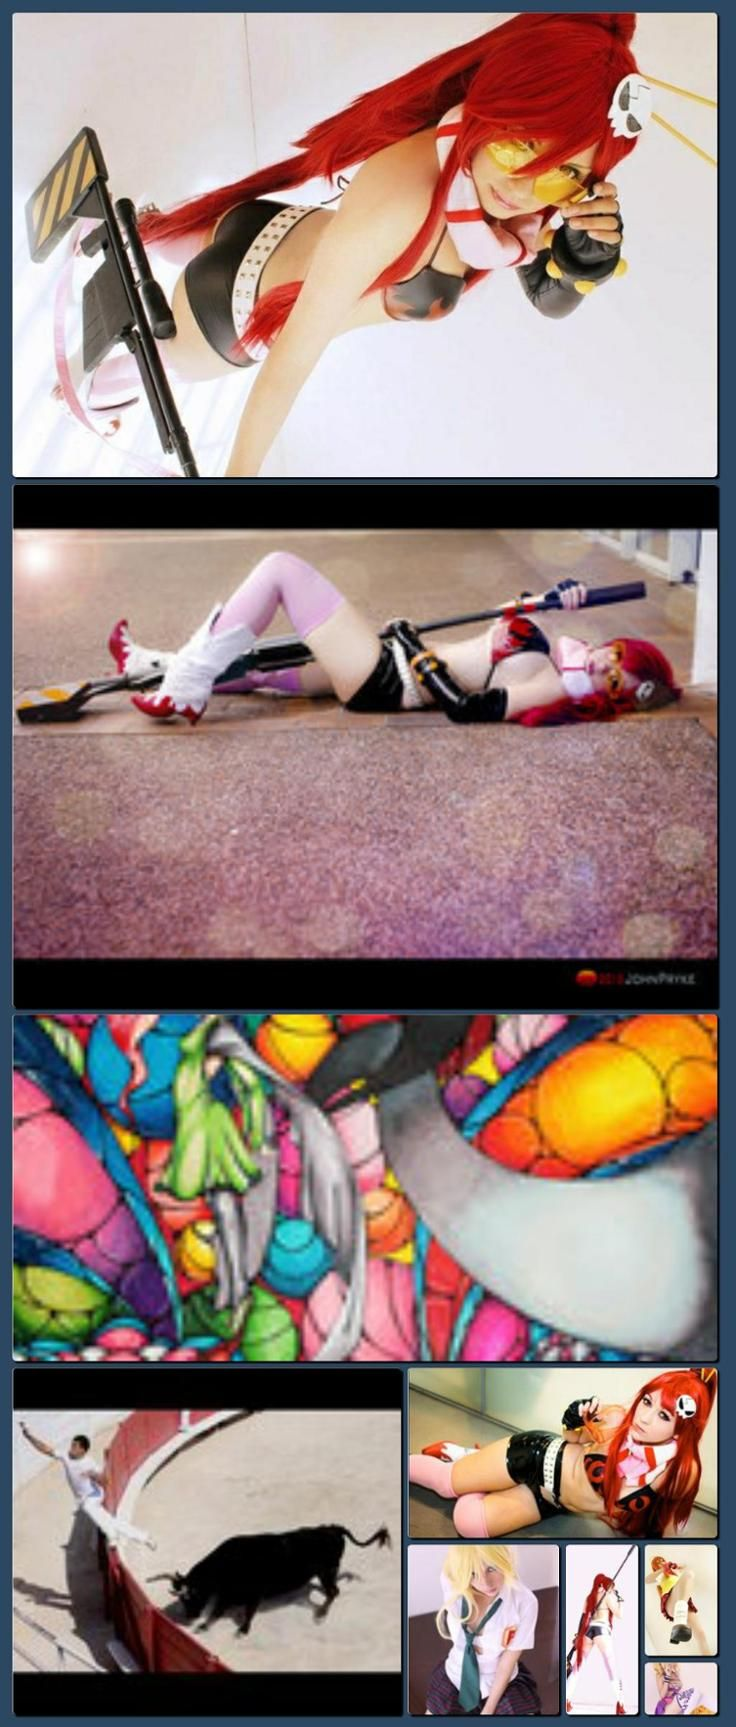 Yoko Cosplay by ~Zettai-Cosplay on deviantART [Collage made with one click using http://pagecollage.com] #pagecollage